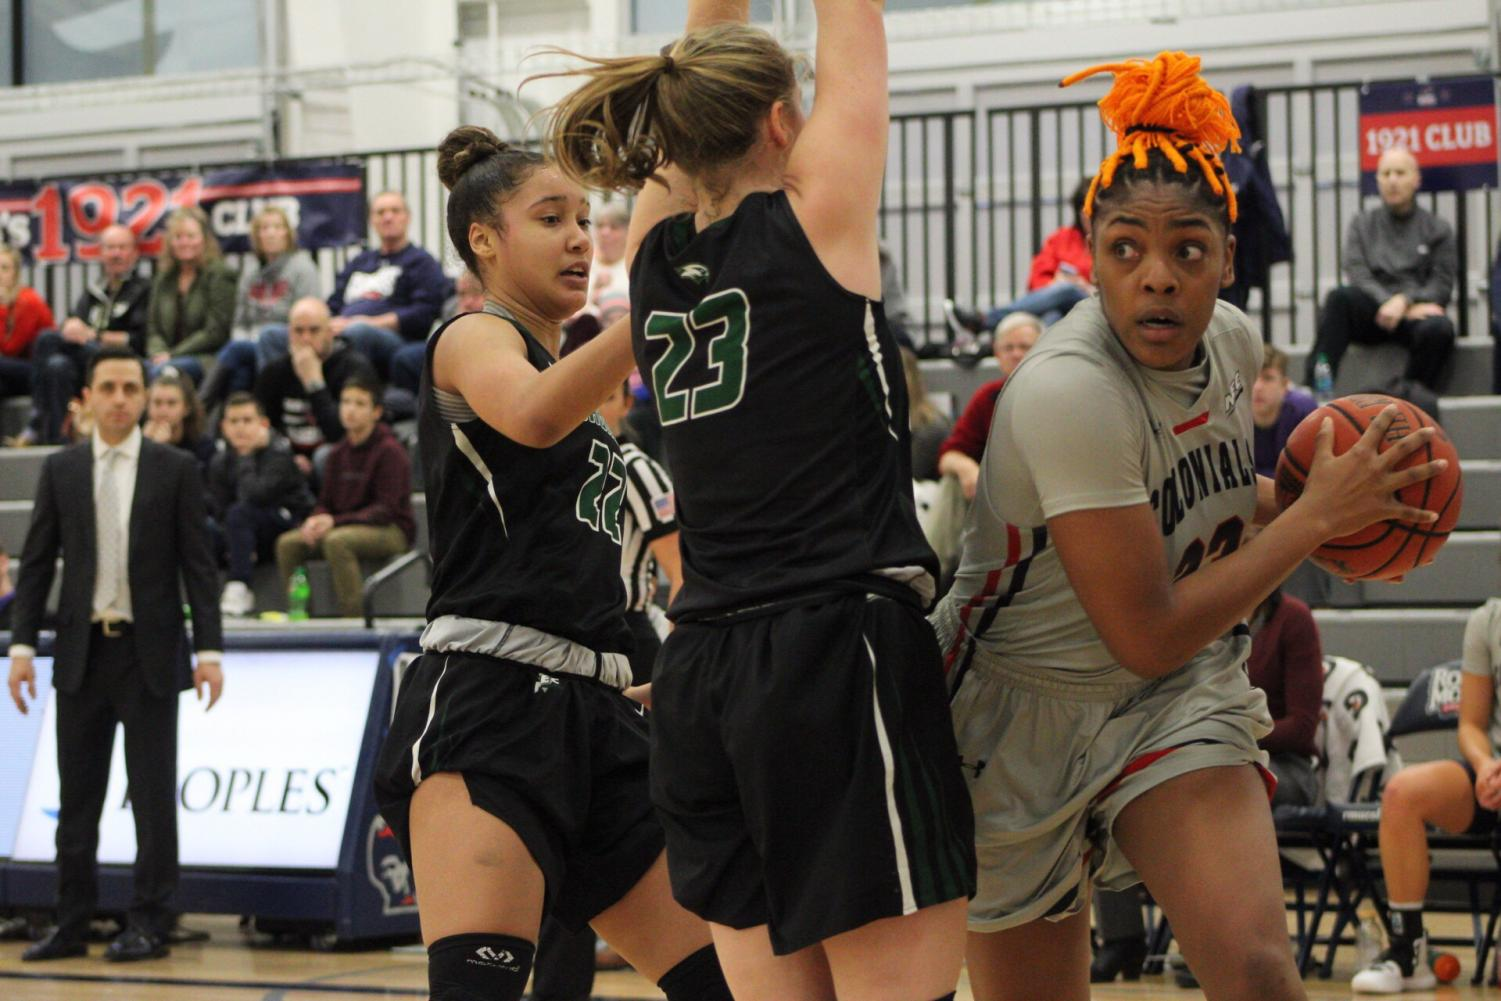 MOON TOWNSHIP -- Nneka Ezeigbo looks to drive to the hoop against Wagner on January 26, 2019 (Michael Sciulli/RMU Sentry Media). Eziegbo had a career night as she finished with a double-double of 13 points and 17 rebounds. Photo credit: Samuel Anthony